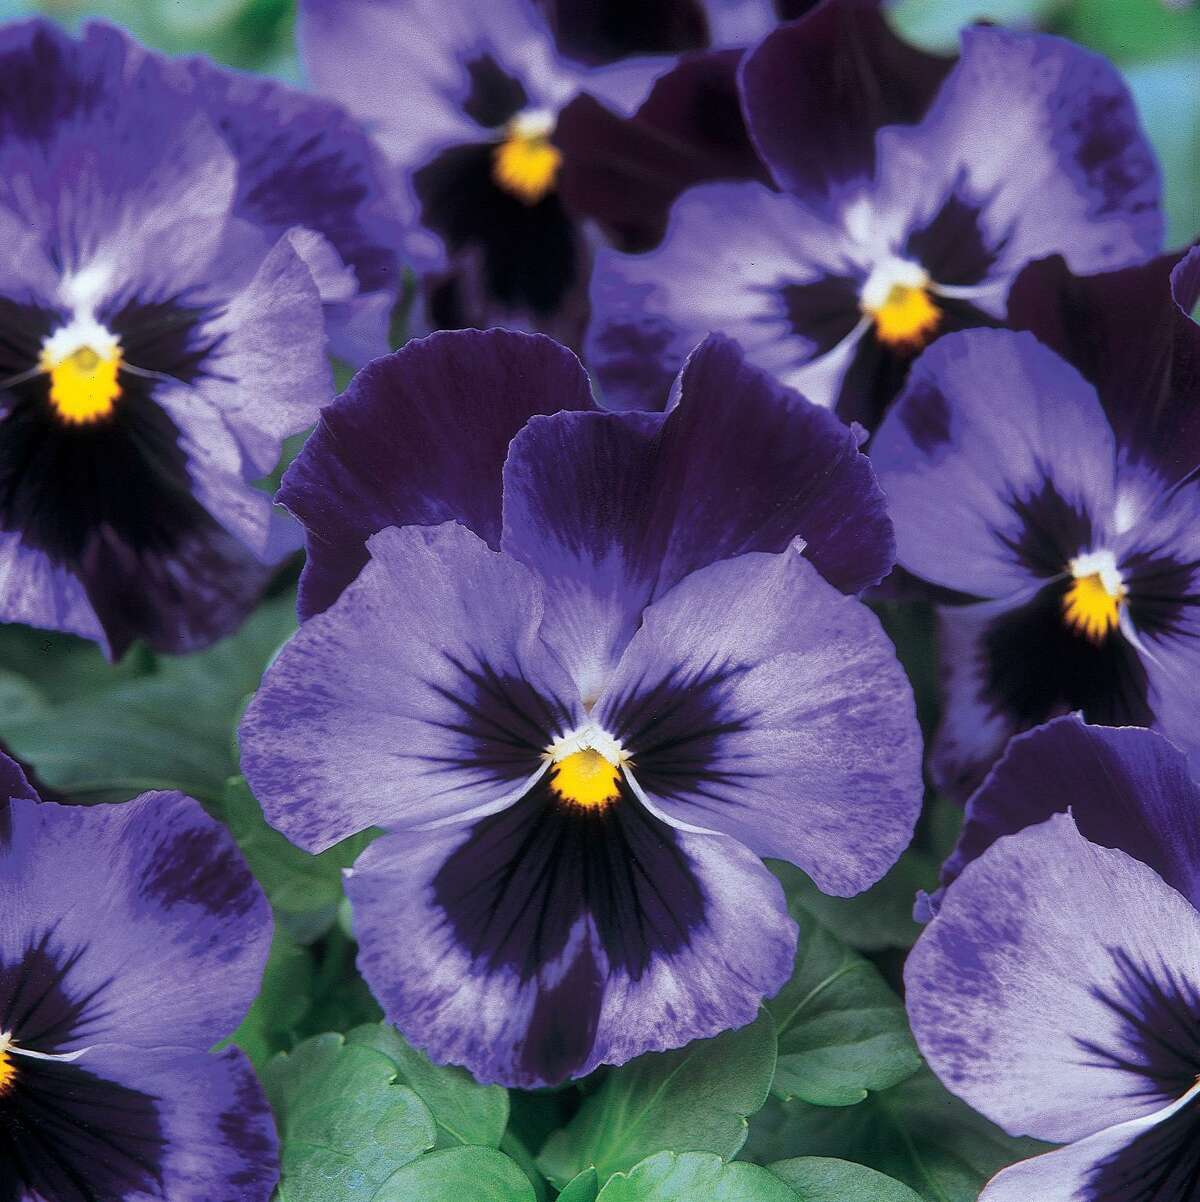 PANSY BABY BINGO -- DENIM c1997 PanAmerican Seed Co. Used in photo illustration HOUSTON - 07/07/2001 SKYBOX HOUCHRON CAPTION (07/07/2001): Local mystery writer's 'weeders' are enjoying the fruit from her garden. Photo illustration (dagger with flowers) by Nadya Shakoor. HOUCHRON CAPTION (07/07/2001): MYSTERY WRITER FINDS PLOT THICKENS IN GARDEN SETTING.